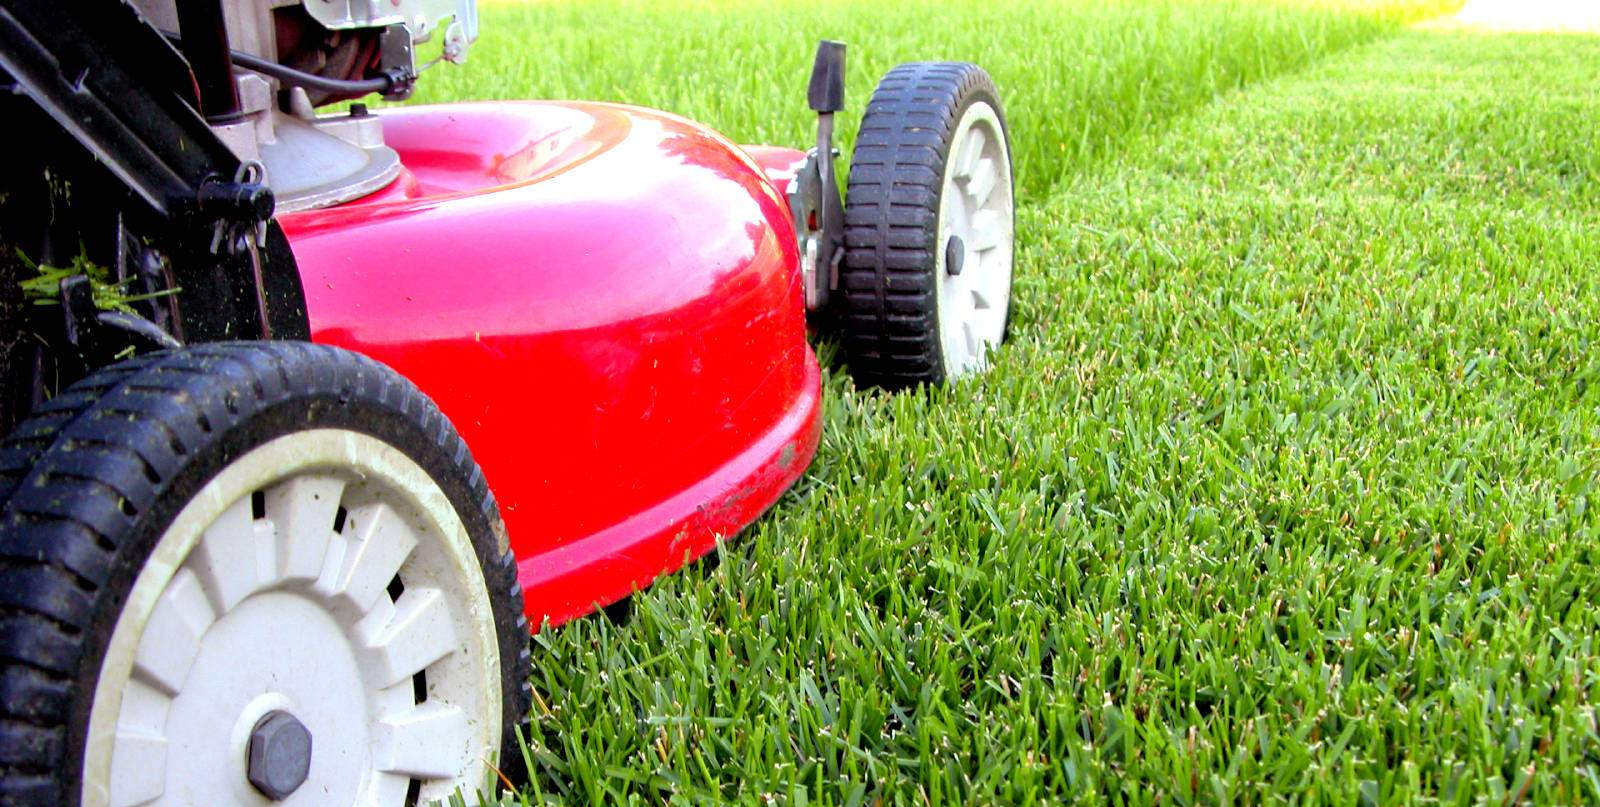 5 Lawn Tips - Troubleshoot Why Your Lawn Isn't Thriving